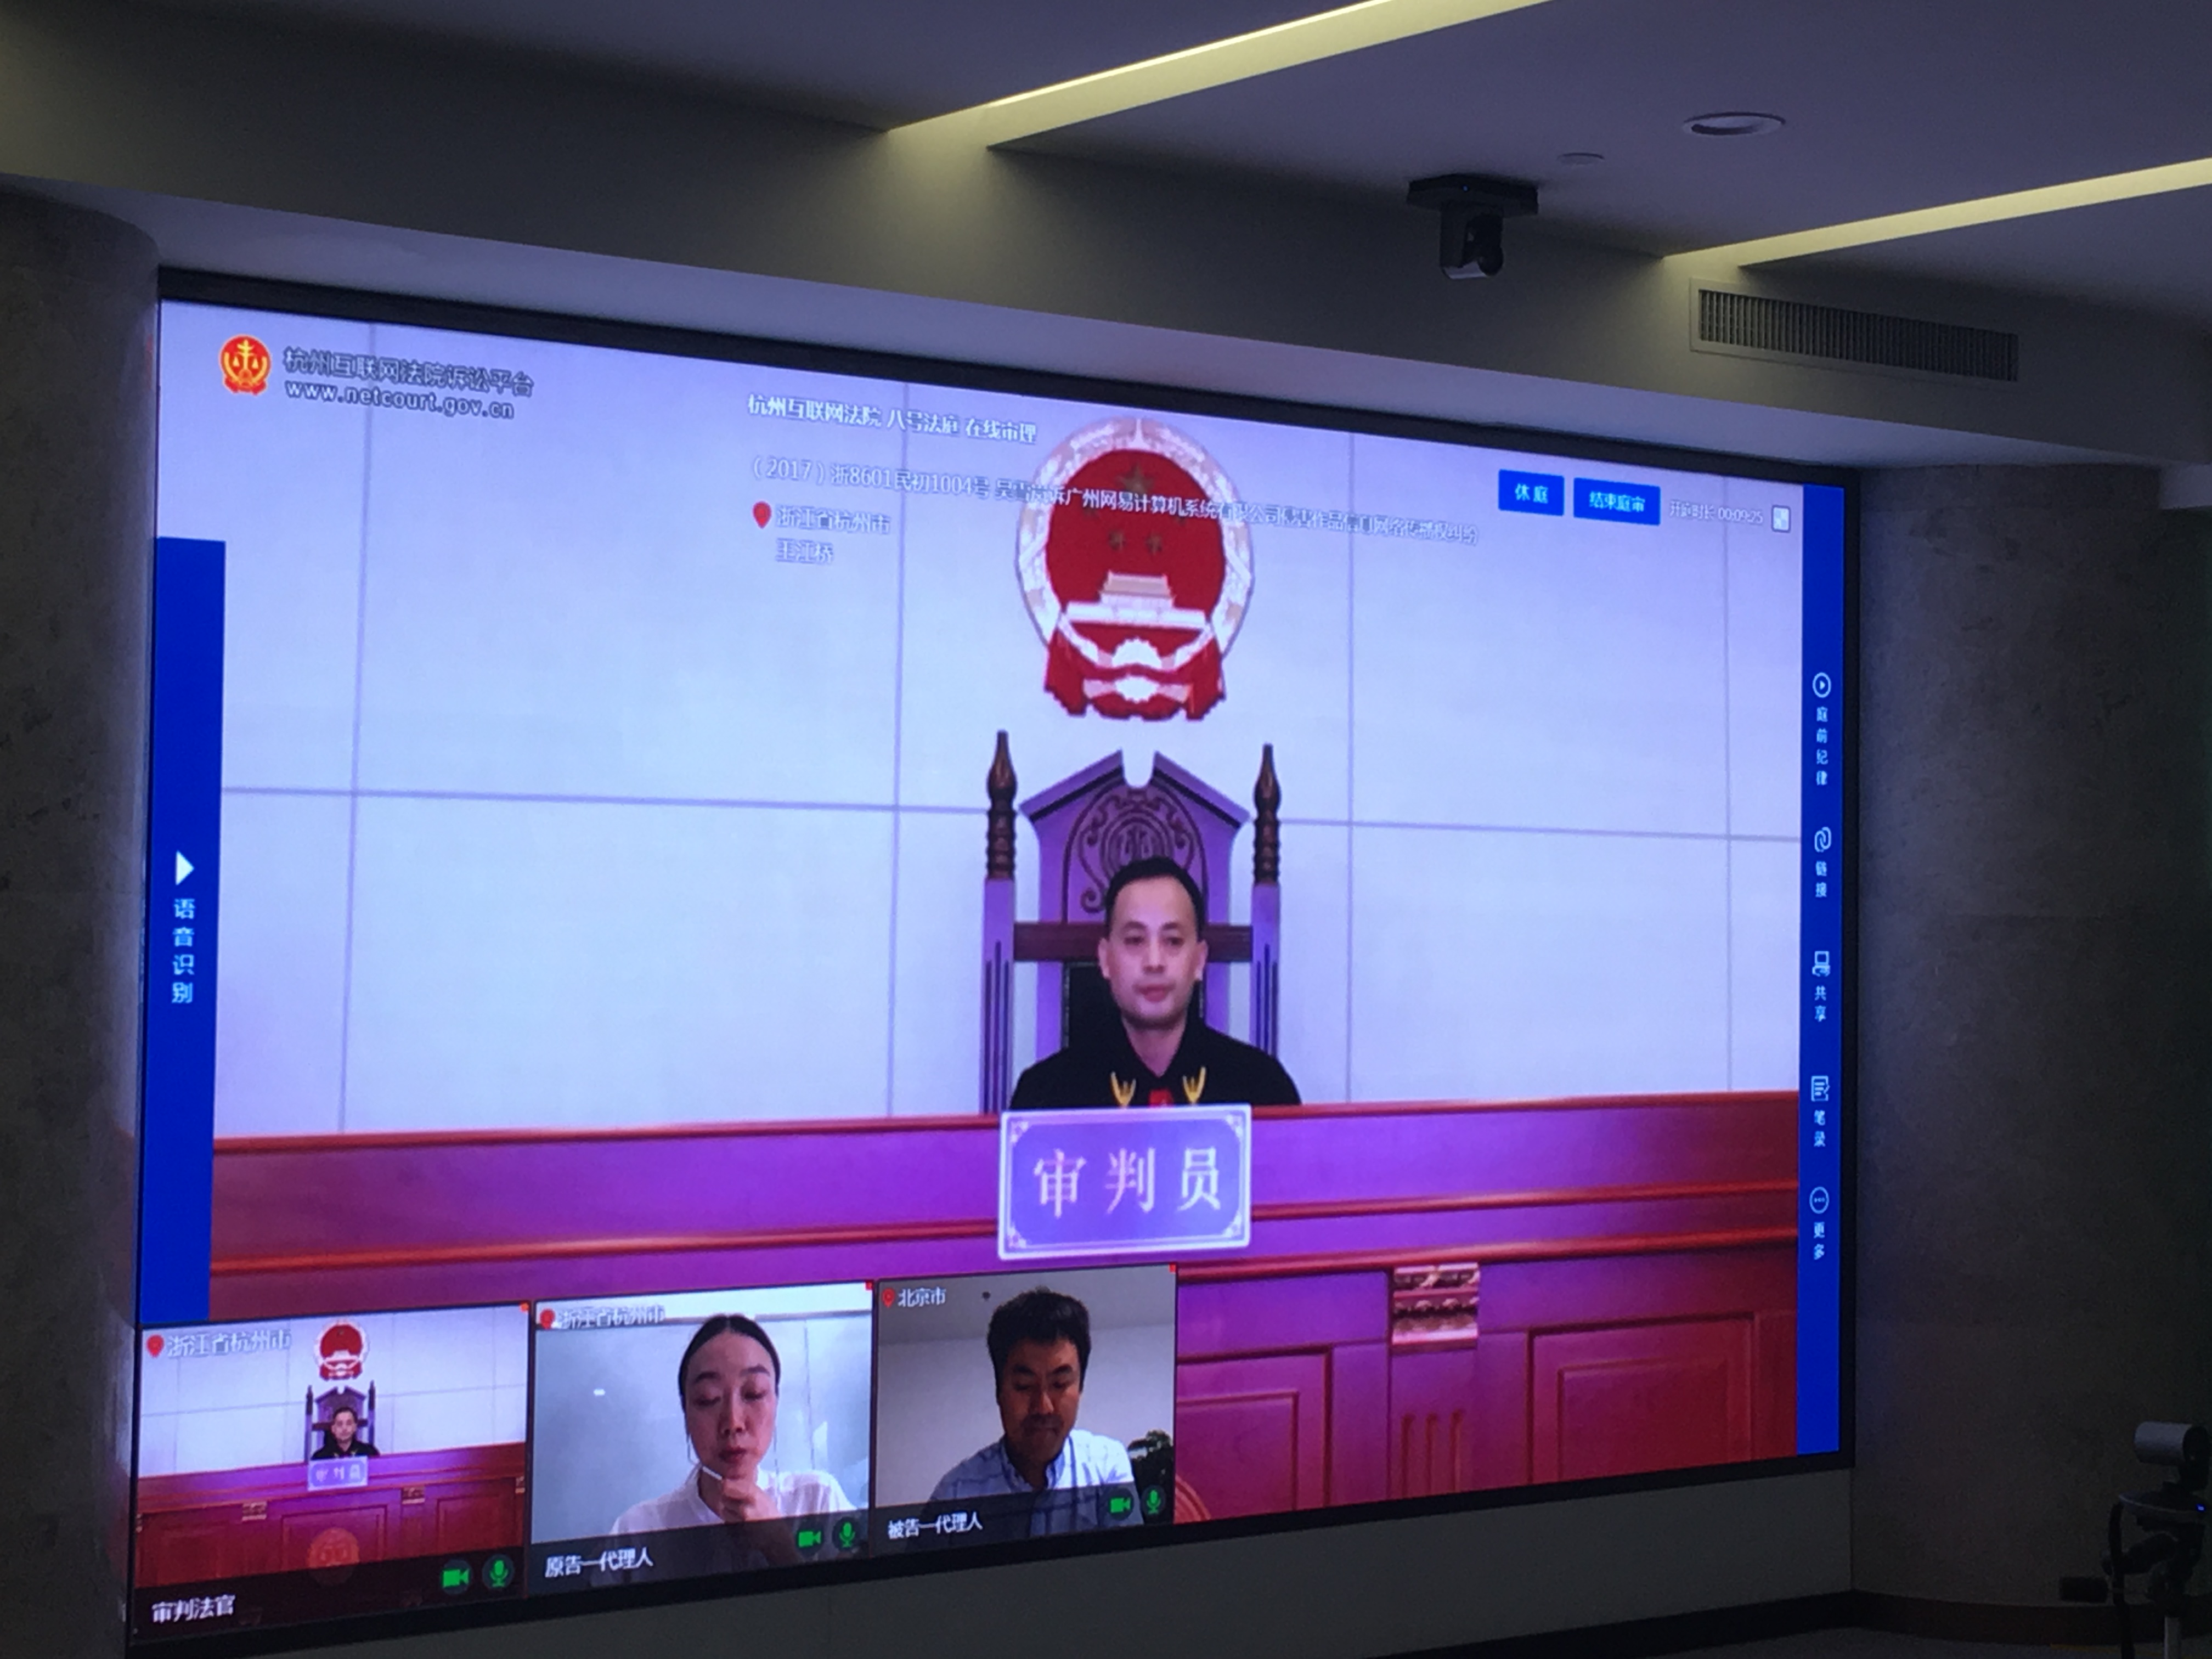 View of an online hearing of an internet-related case at Hangzhou Court of the Internet, the first internet court in the world, in Hangzhou city, east China's Zhejiang province, 18 August 2017.  Hangzhou Court of the Internet, set up to handle the soaring number of online disputes, has gone online in Hangzhou, Zhejiang province, on Friday (18 August 2017). It is said to be the first internet court in the world, and it will focus on hearing six kinds of civil and administrative internet-related disputes, including online piracy and e-commerce. The court has generated attention among internet and legal industries since its establishment was formally approved by the central leadership by the end of June.No Use China. No Use France.